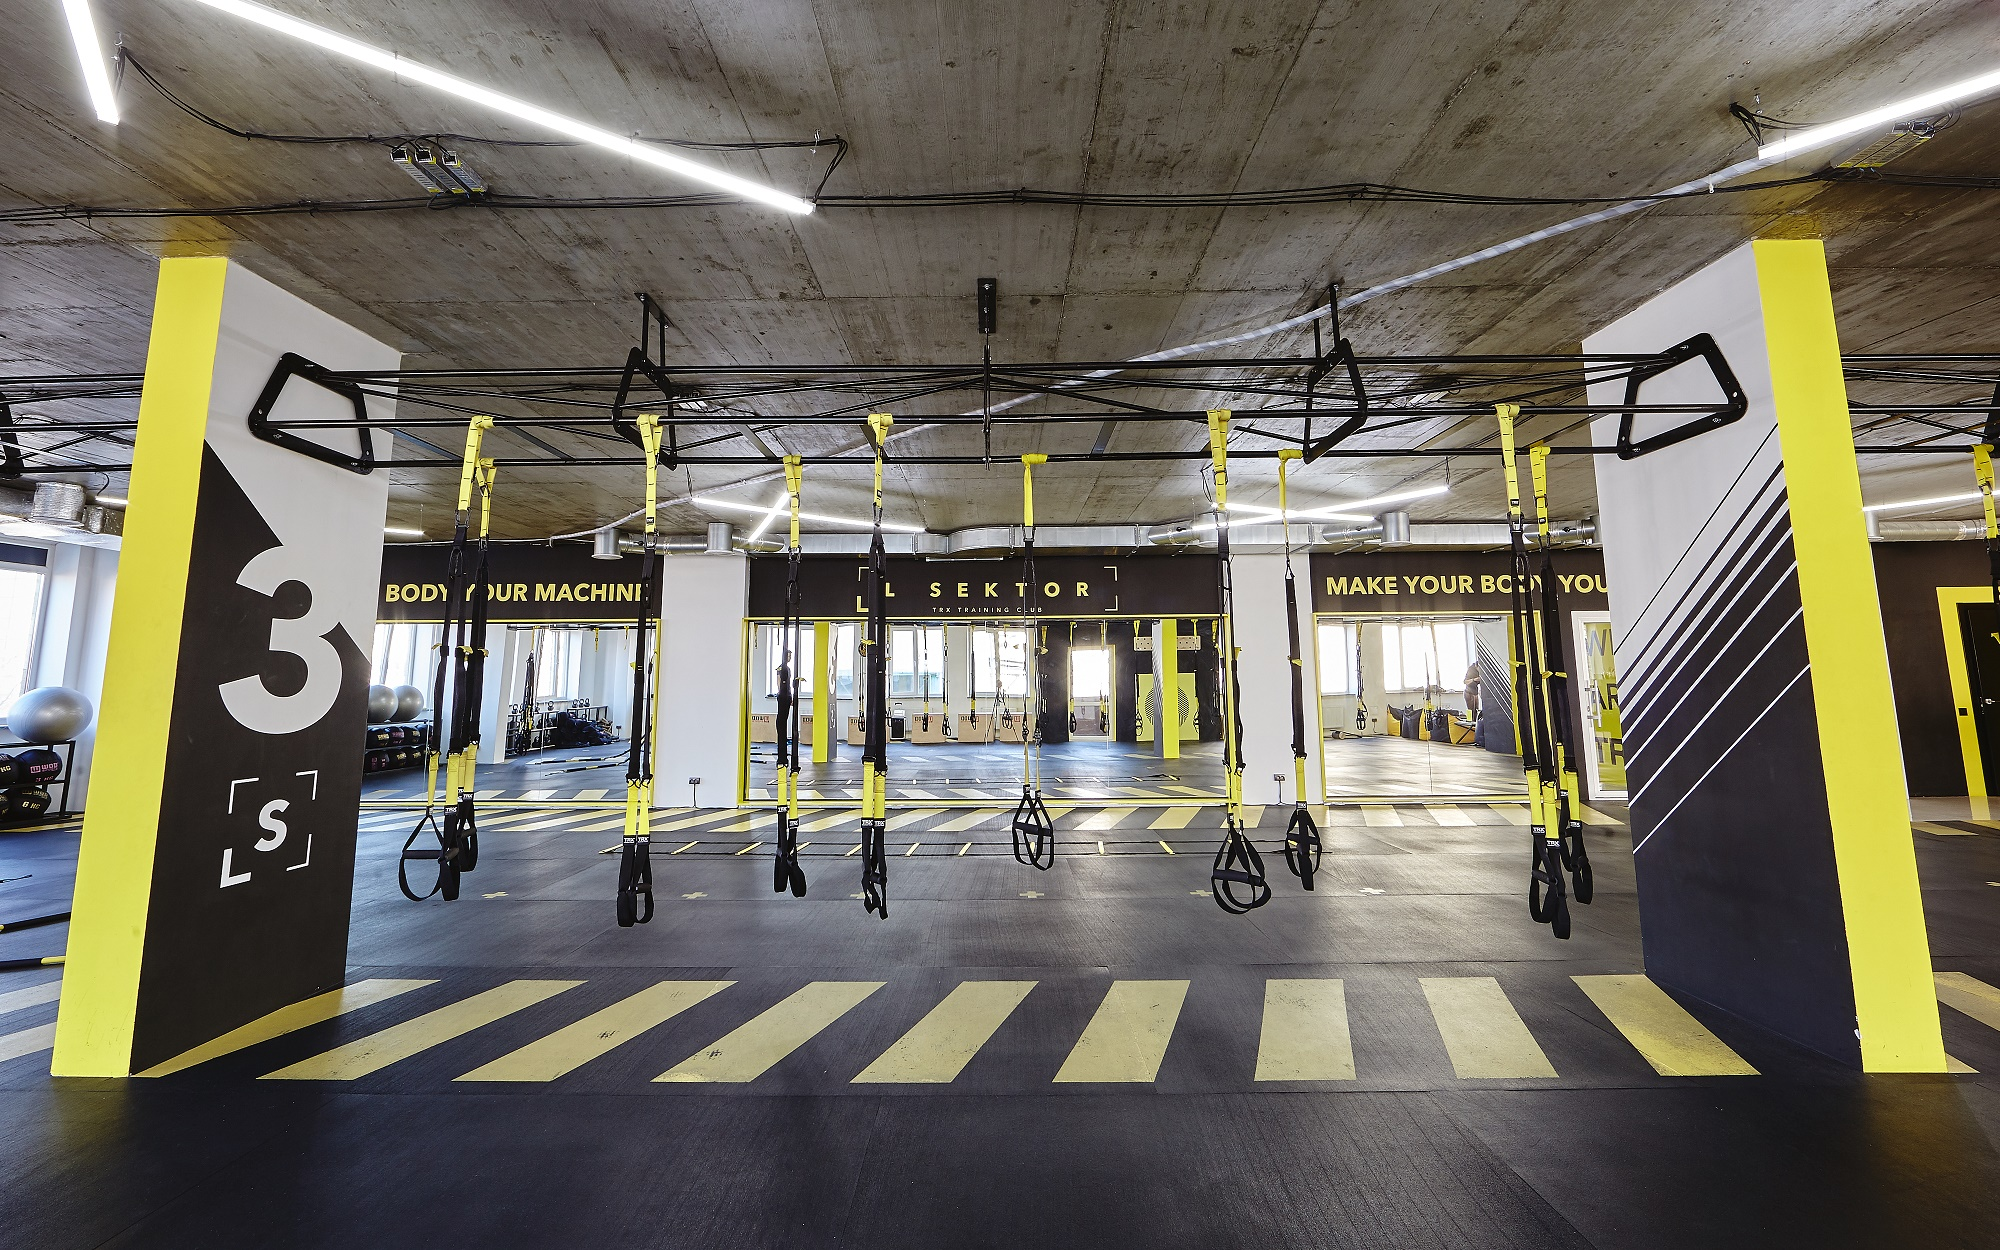 L Sektor TRX training club